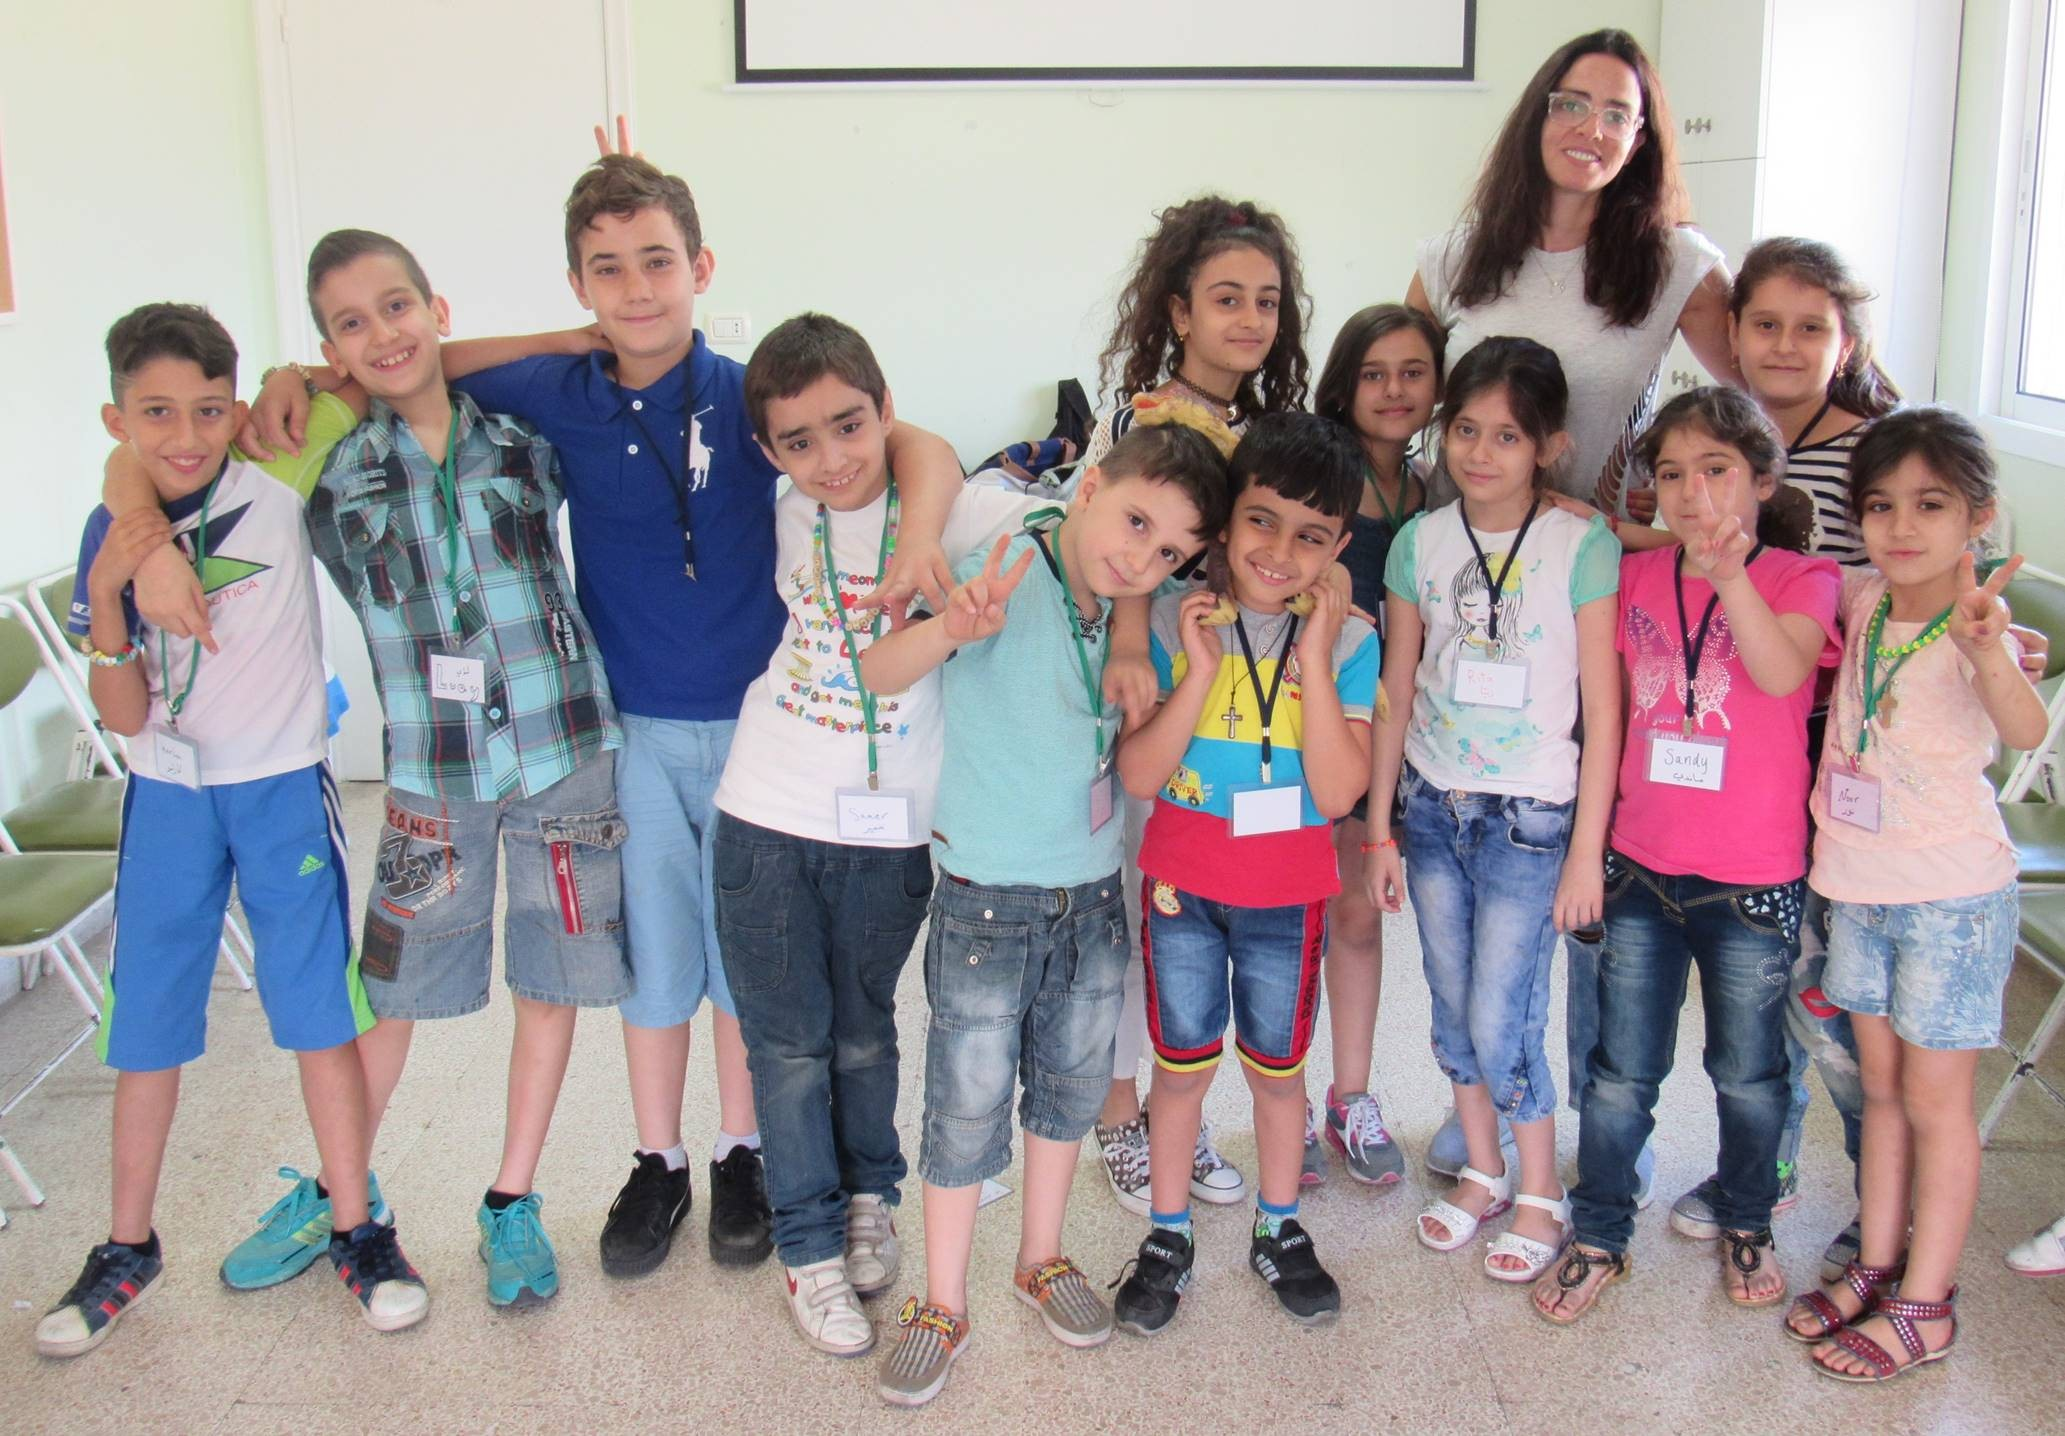 Participants in the June 2017 pilot program for Strong Kids/Strong Emotions; These children are all Iraqi refugees forced from their homes by ISIS in 2014, now living in Beirut